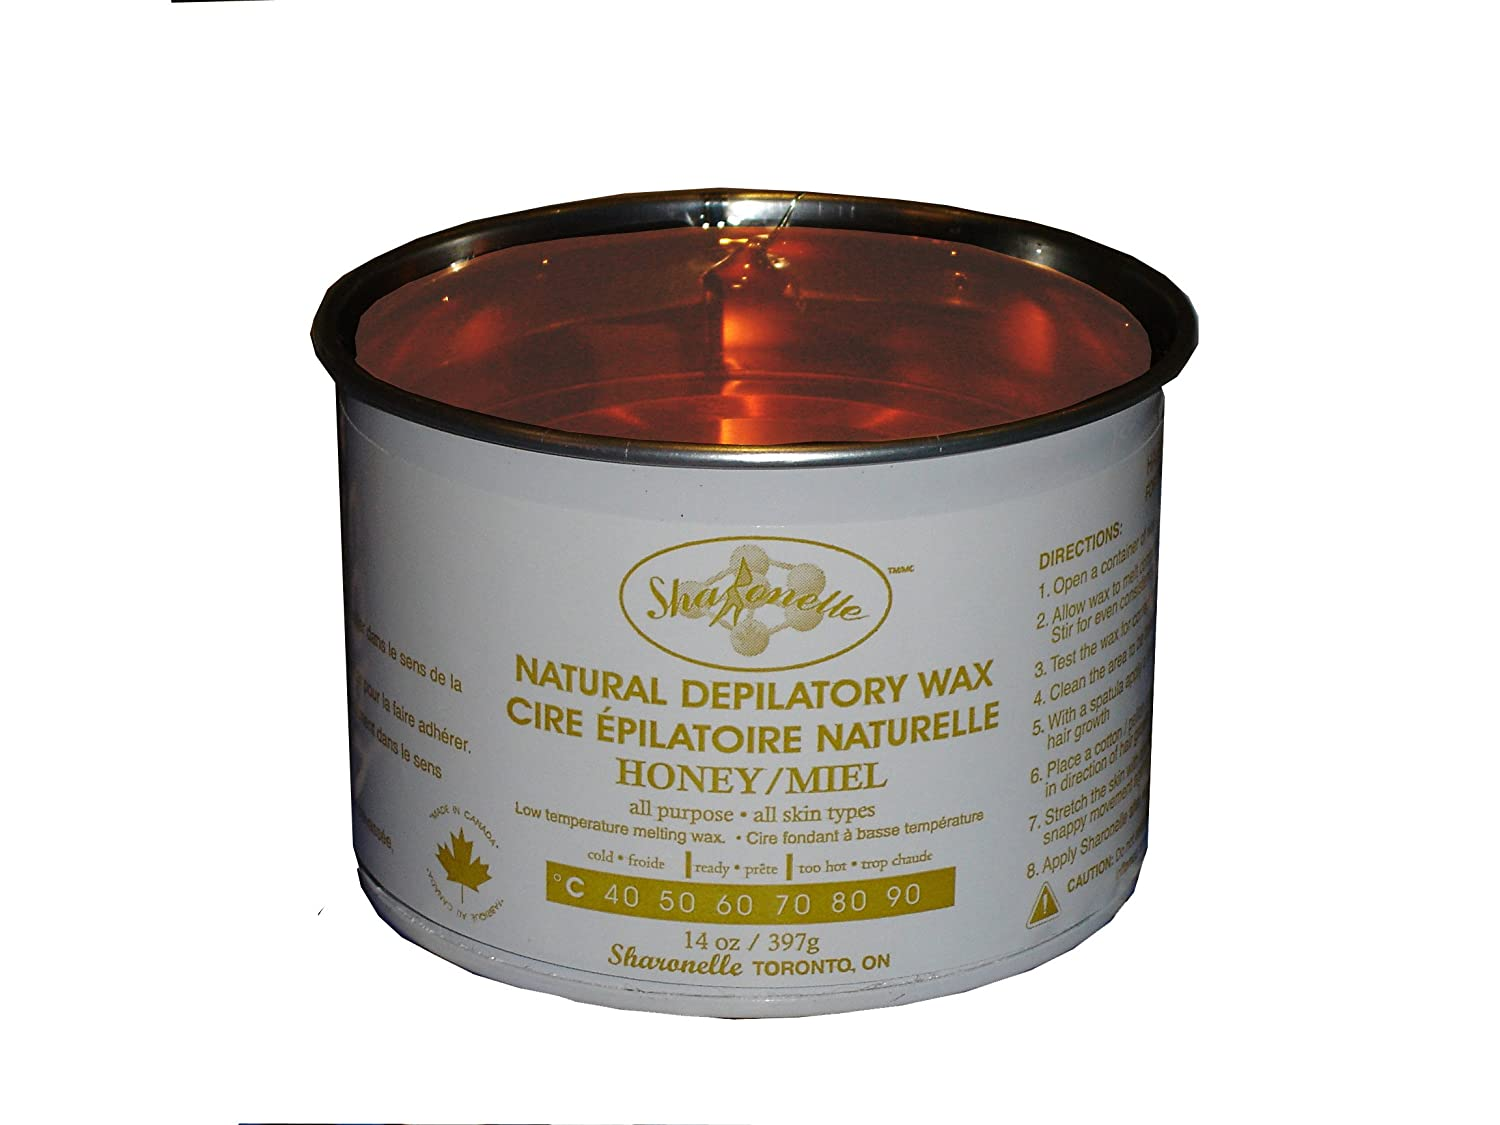 Sharonelle Natural Depilatory Wax Honey 14oz.